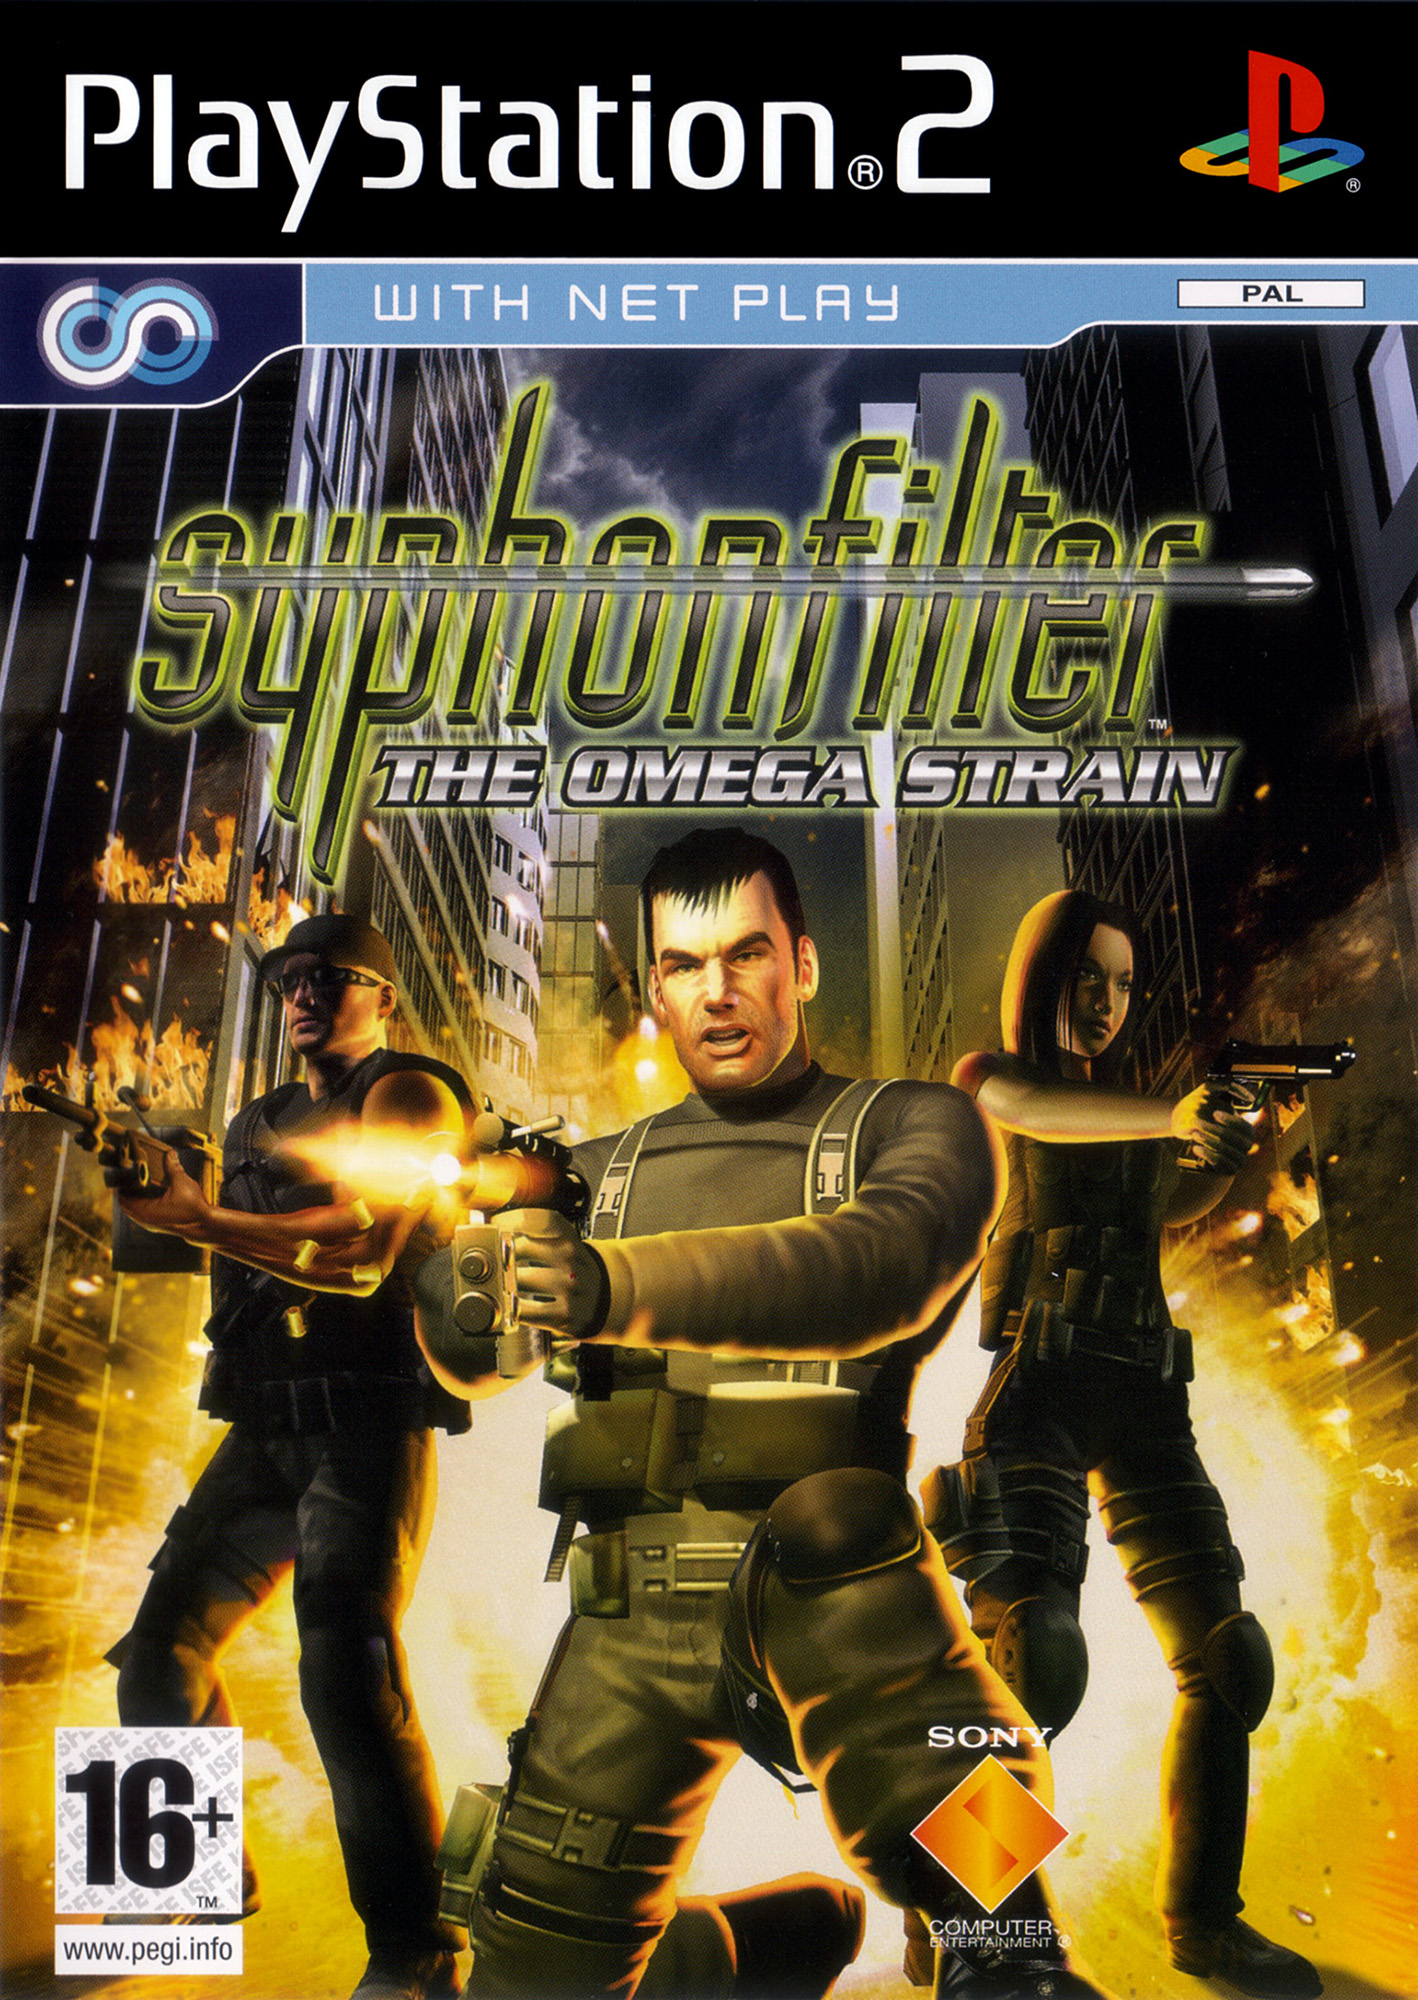 Ps1] syphon filter gameplay with epsxe (full hd)[1080p] youtube.